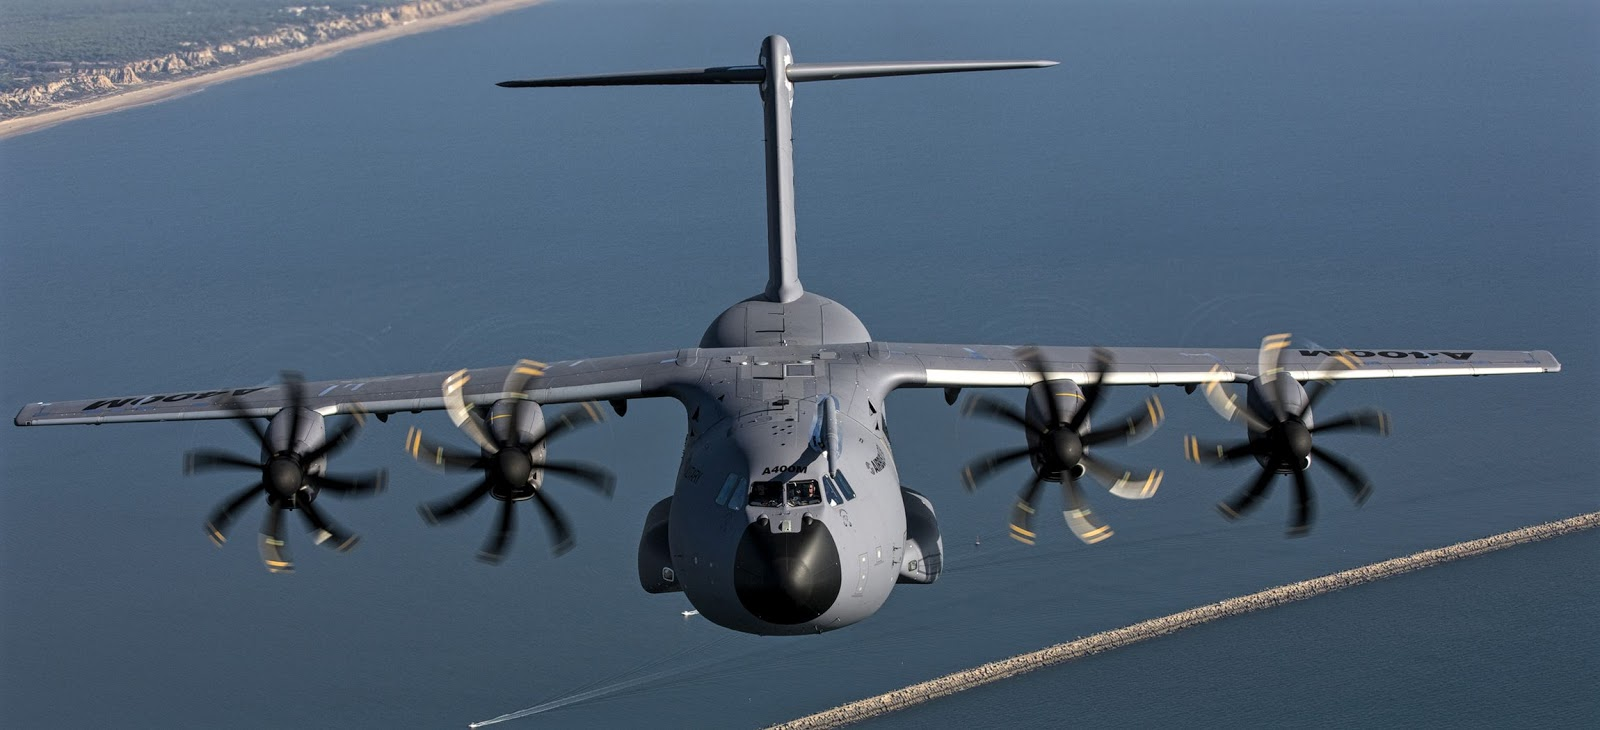 Airbus A400M Atlas Crashed At Seville - AERONEF NET